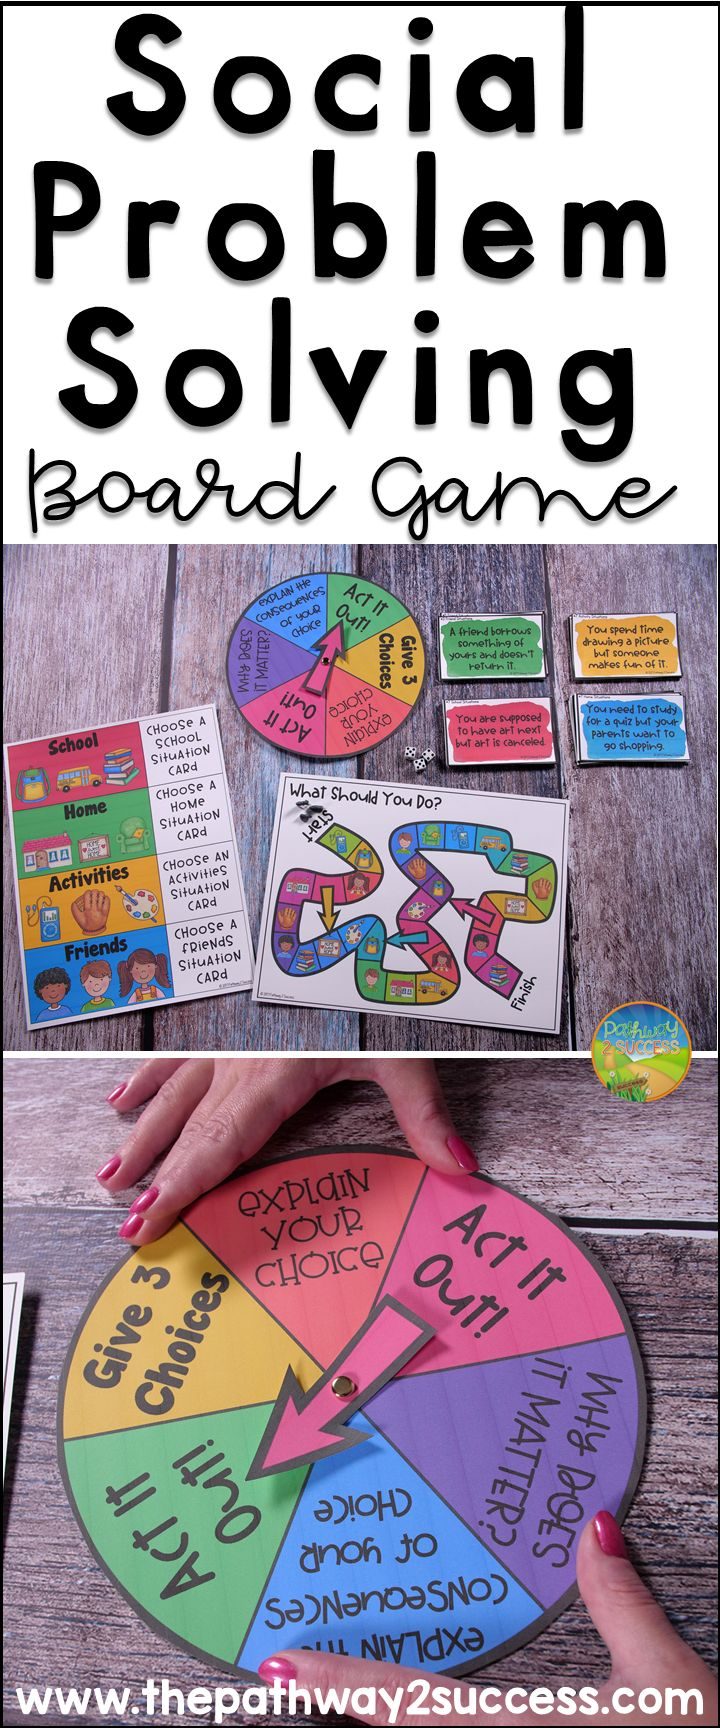 Social problem solving board game that teaches social skills and problem solving skills related to real life scenarios!